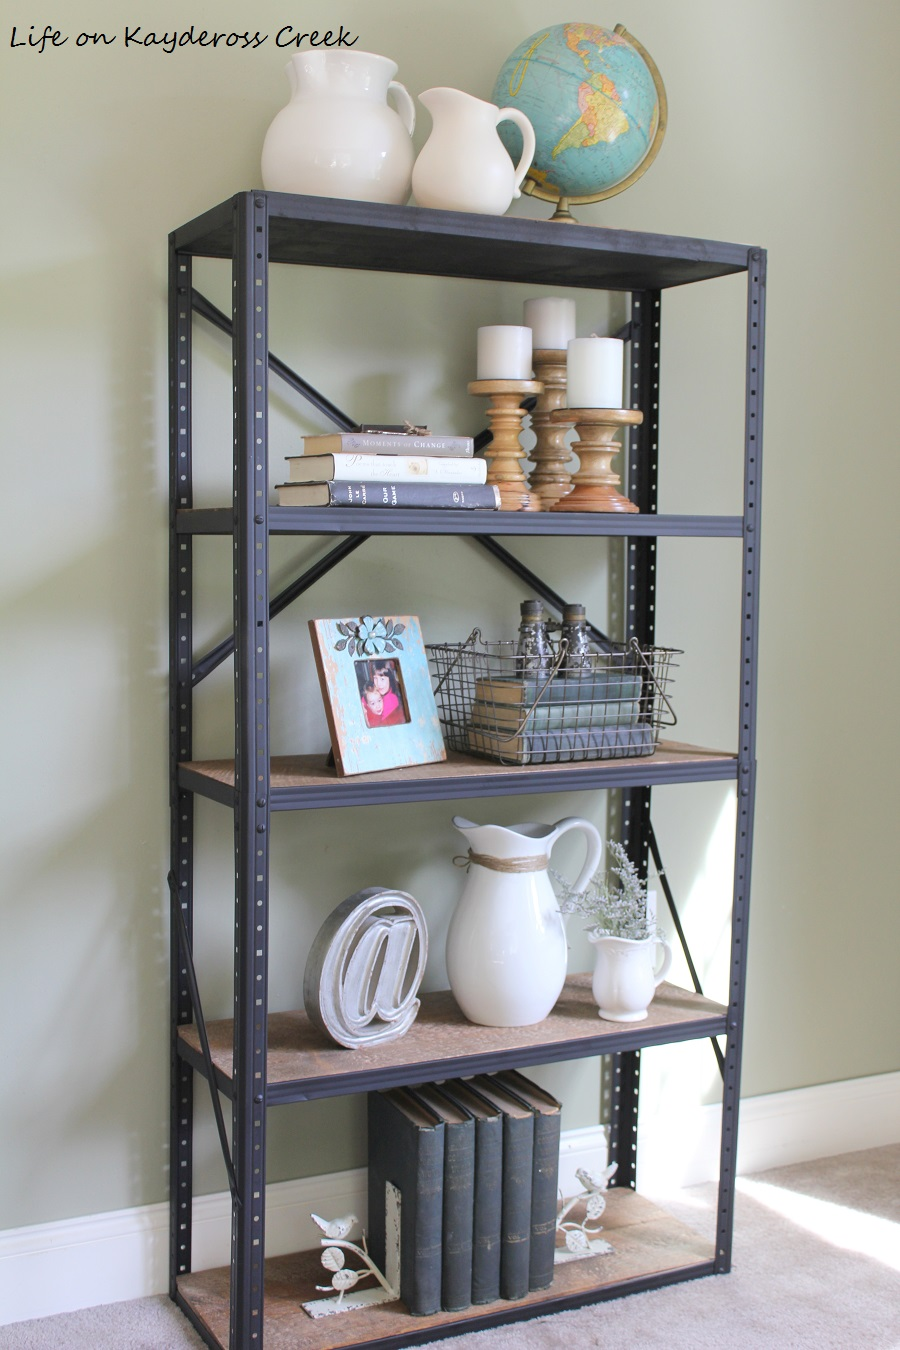 Top 10 Posts - Industrial Style bookshelf - Life on Kaydeross Creek